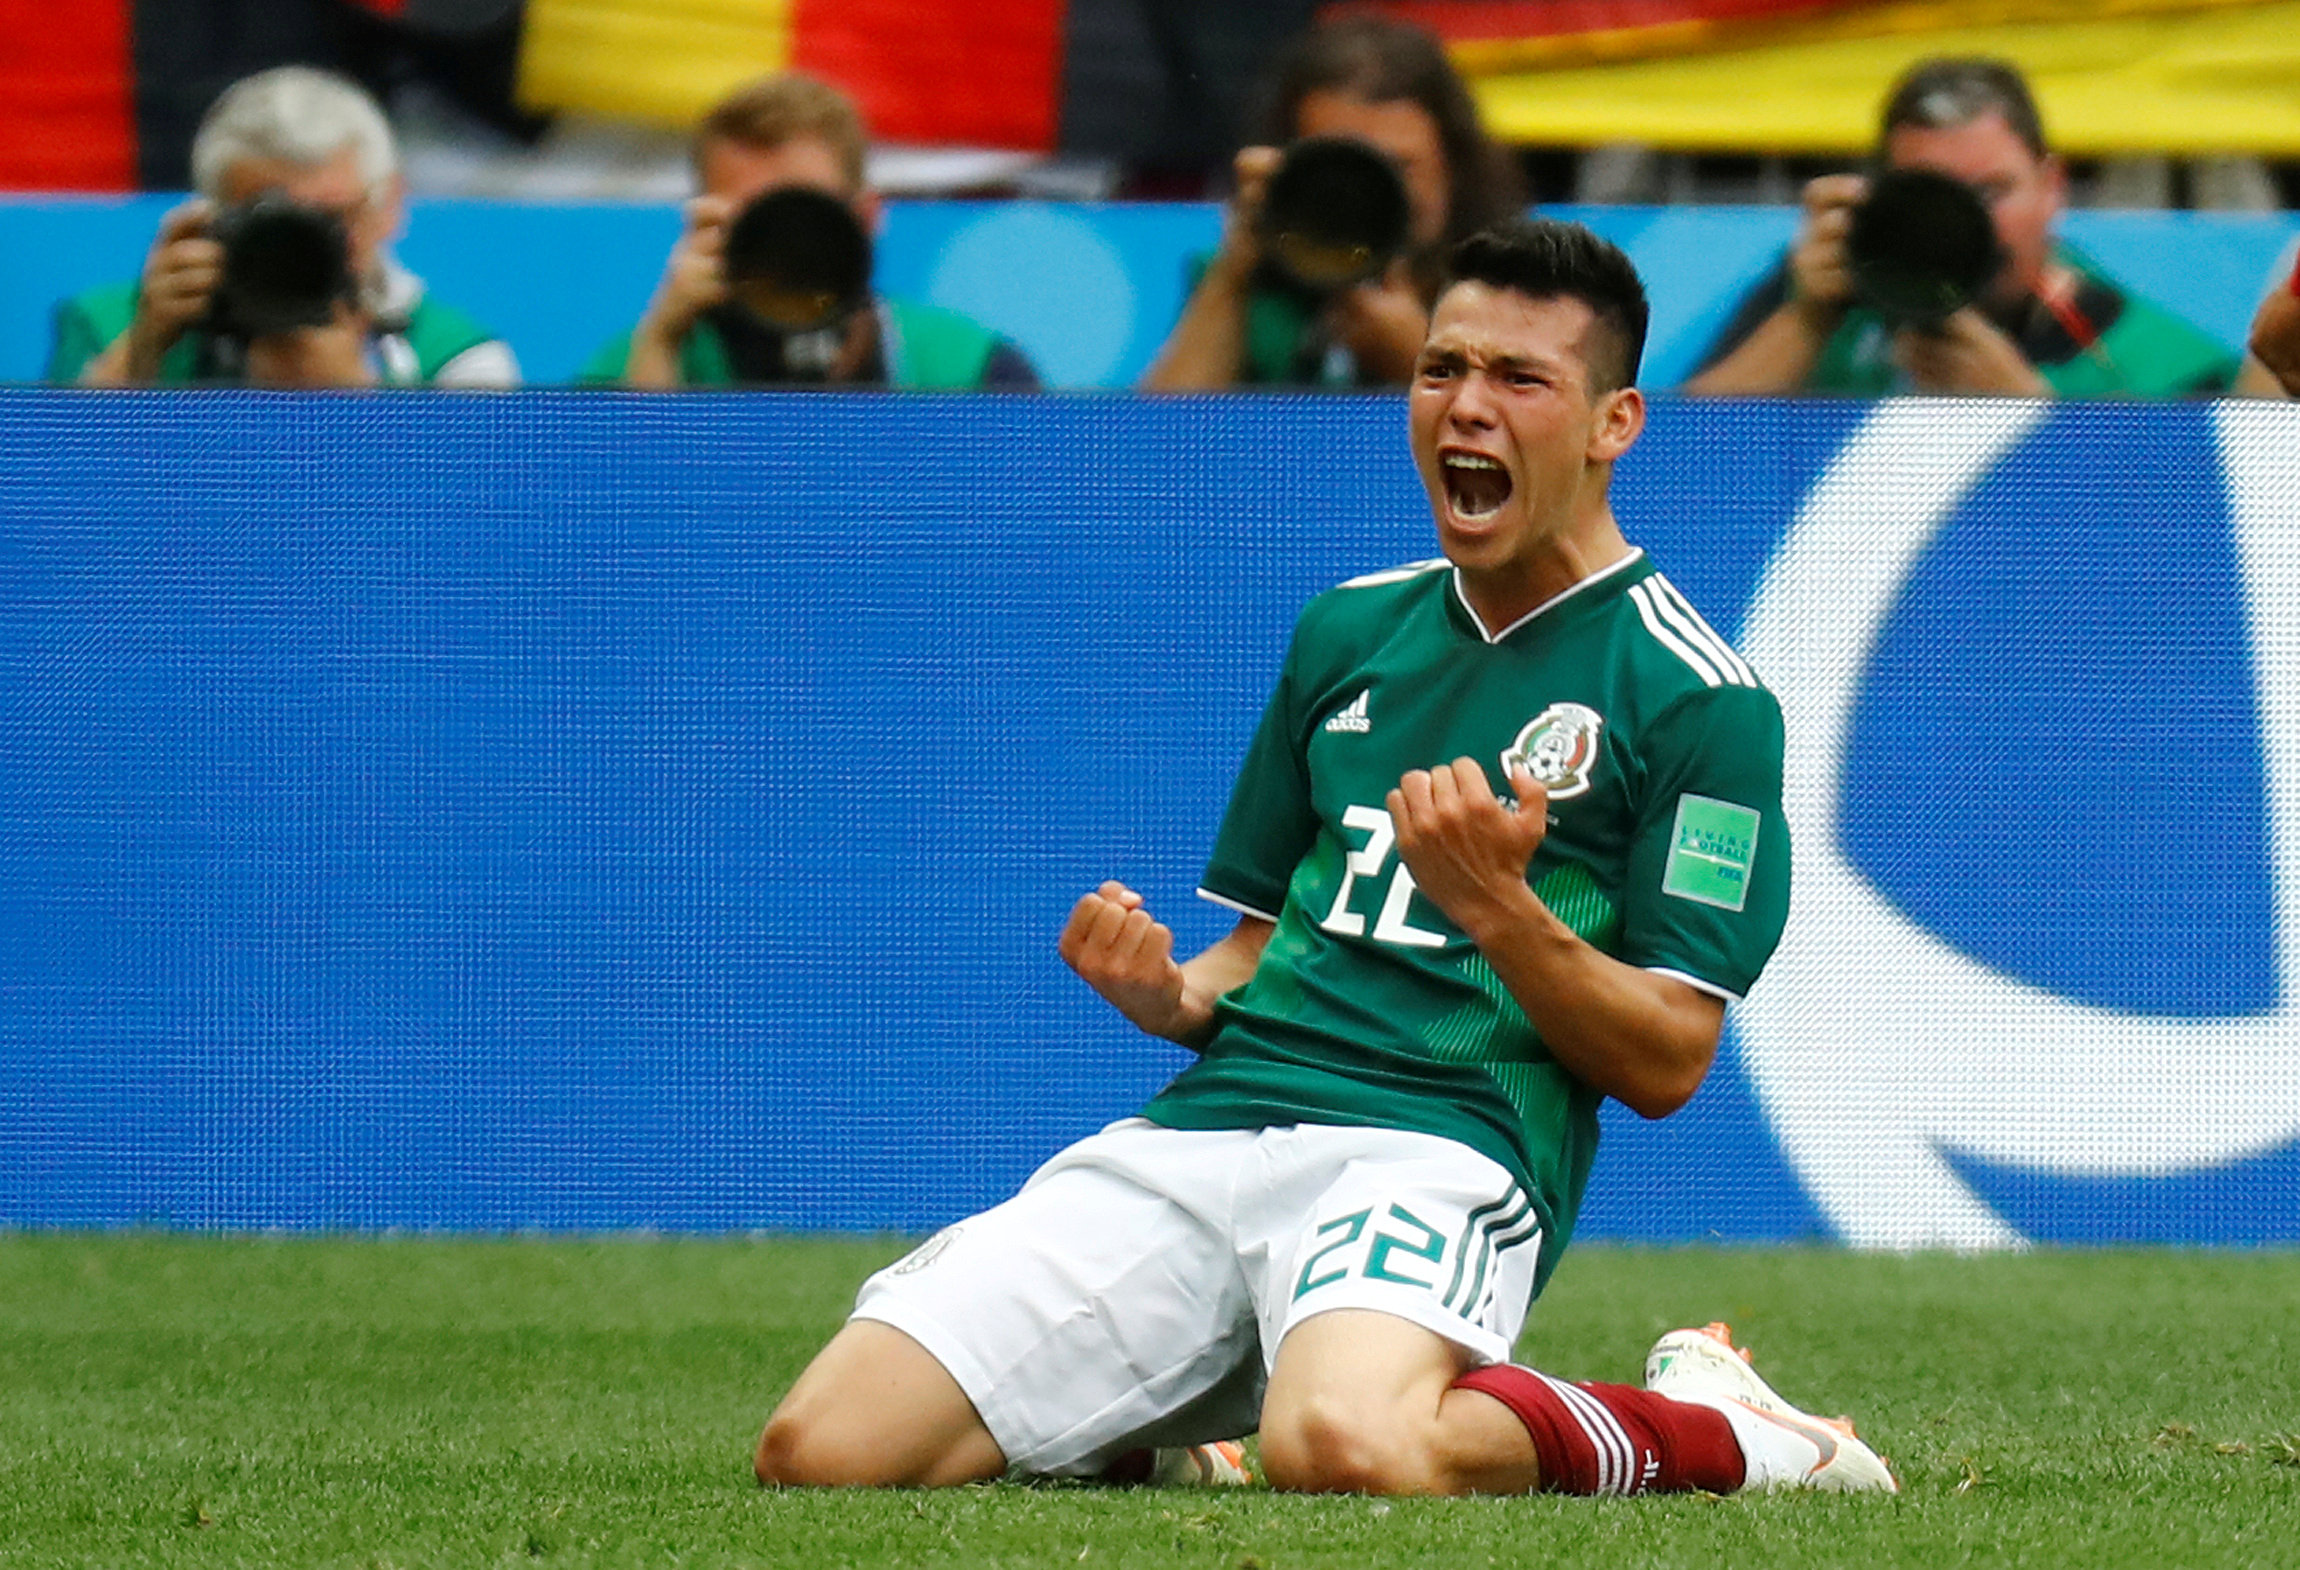 Hirving Lozano best players in the FIFA World Cup so far- Round 1